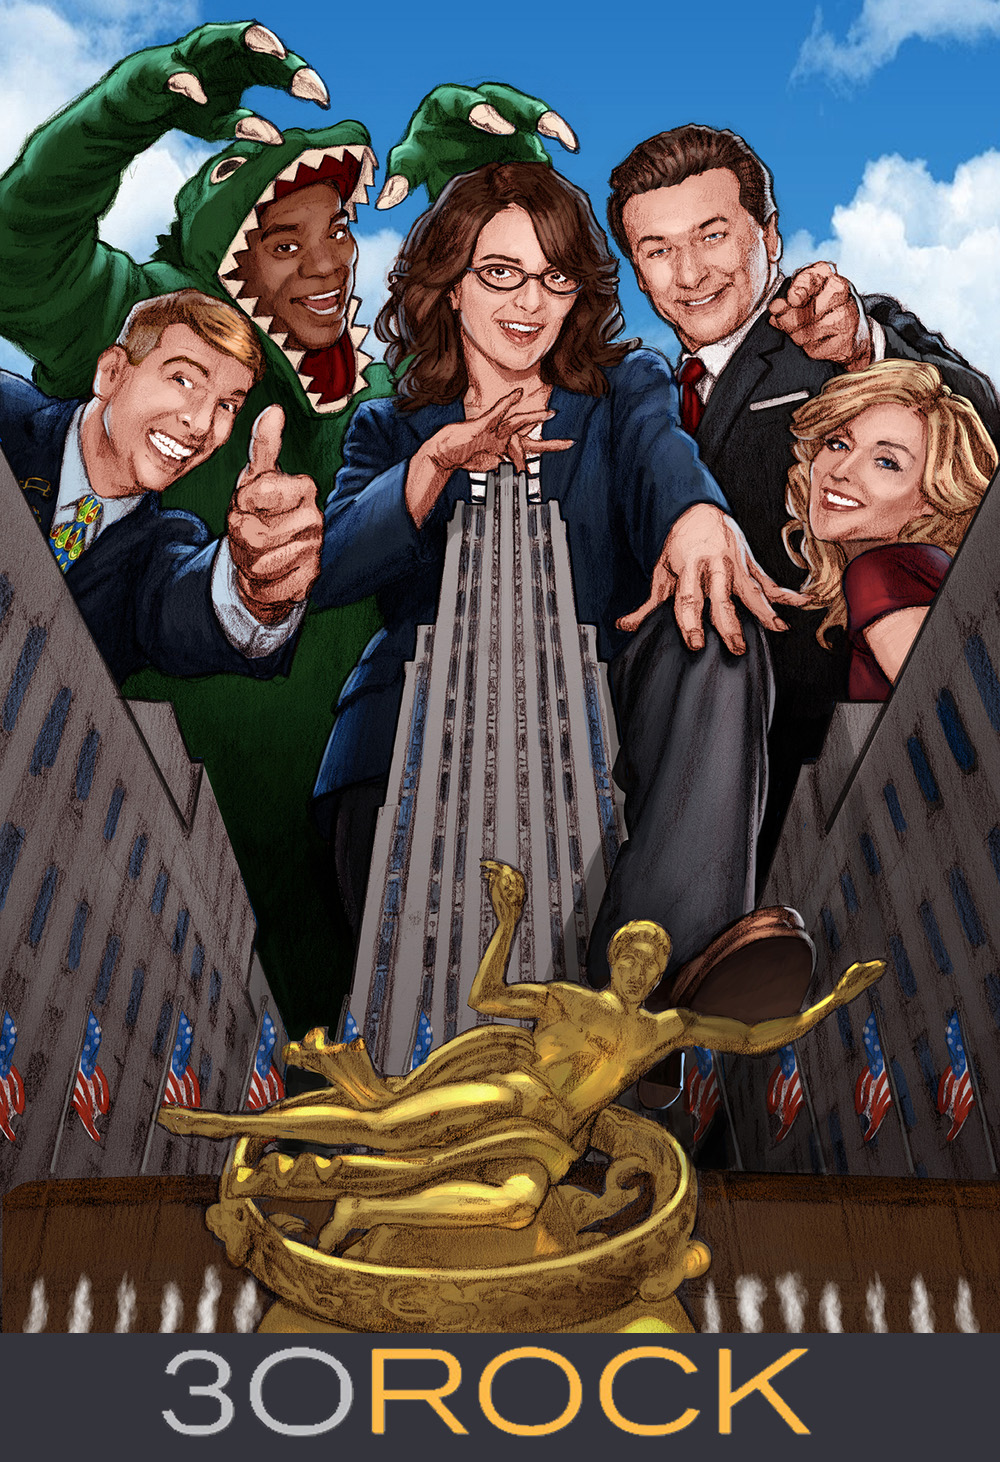 30rock2_notext.jpg